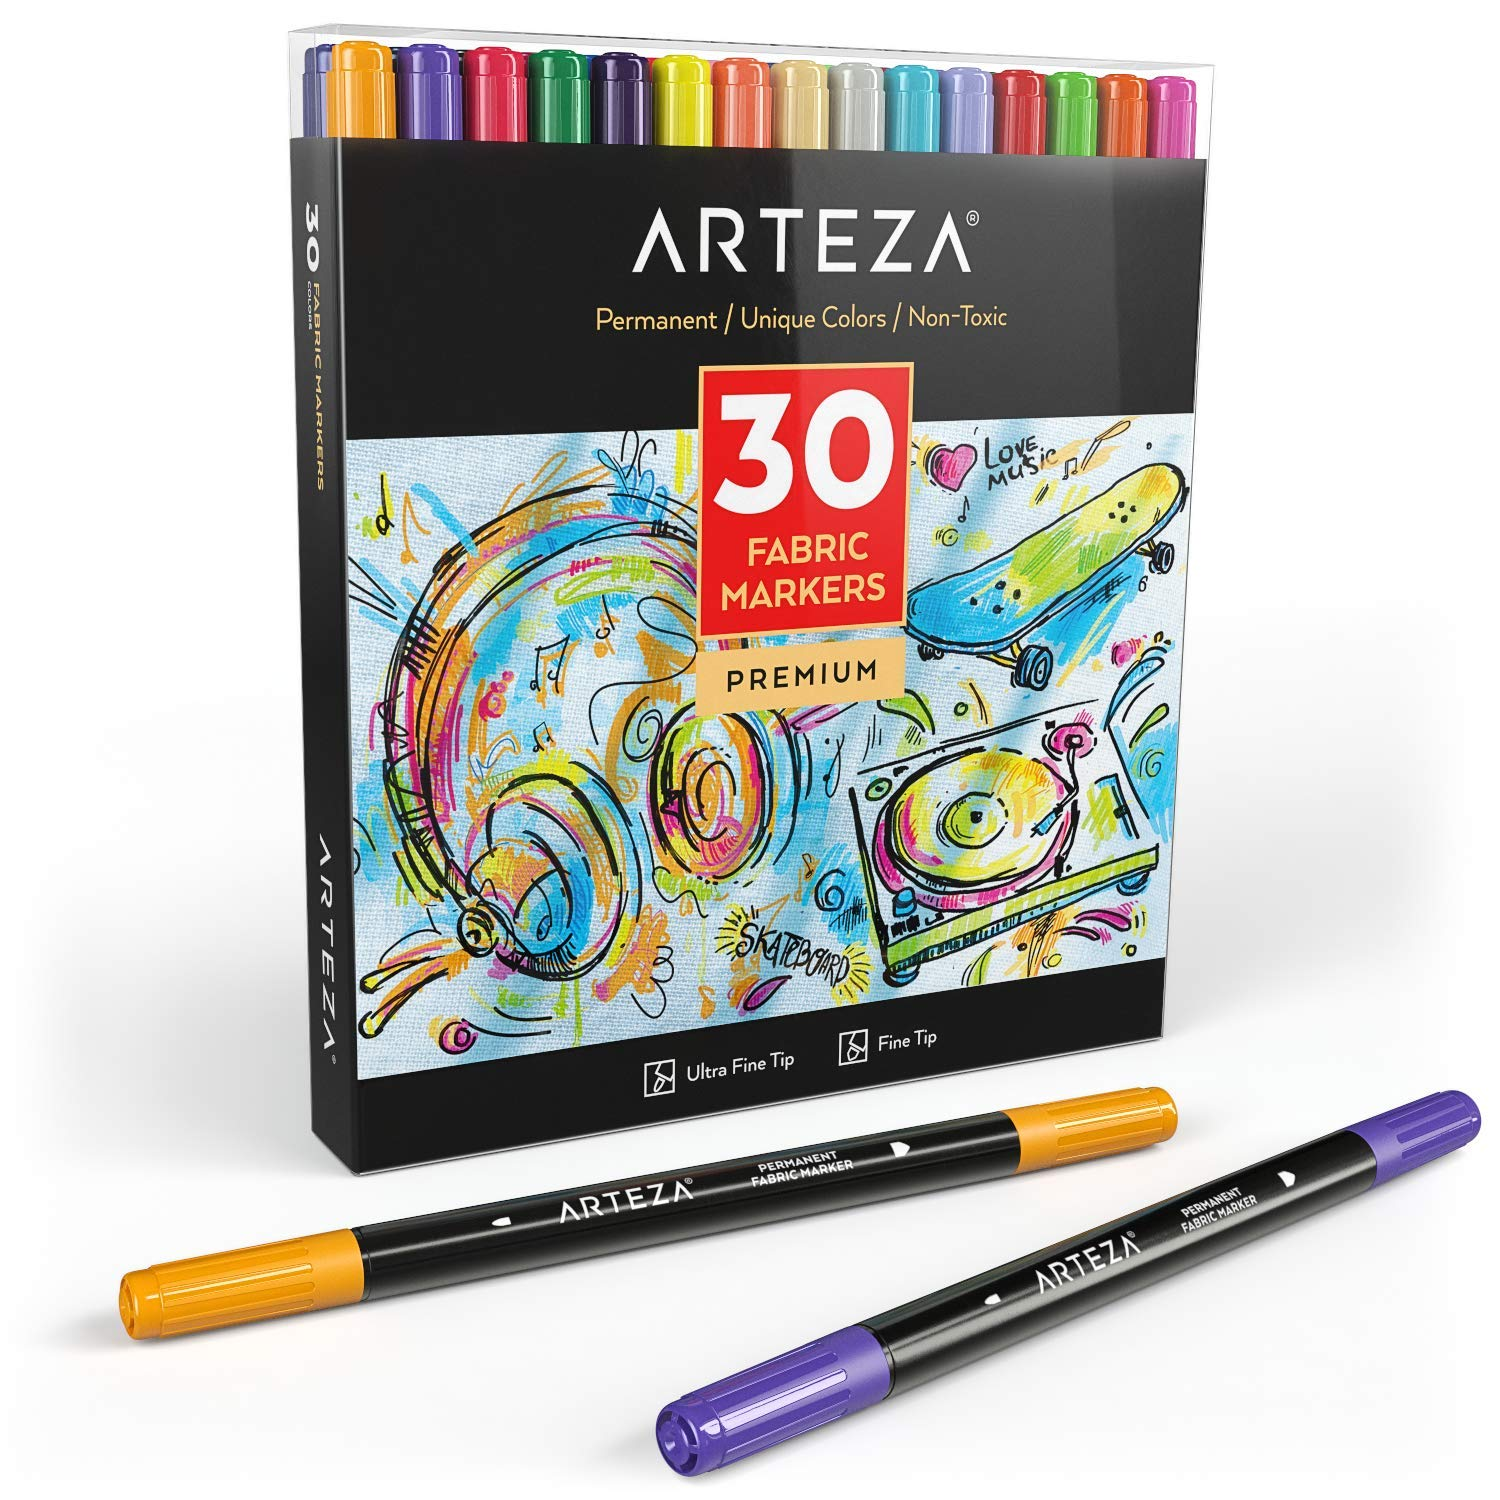 ARTEZA Fabric Markers, Set of 30 Assorted Colors, Permanent and Machine Washable Ink Ideal for Coloring Jeans, T-Shirts, Sneakers, Backpacks, Jackets, and More by ARTEZA